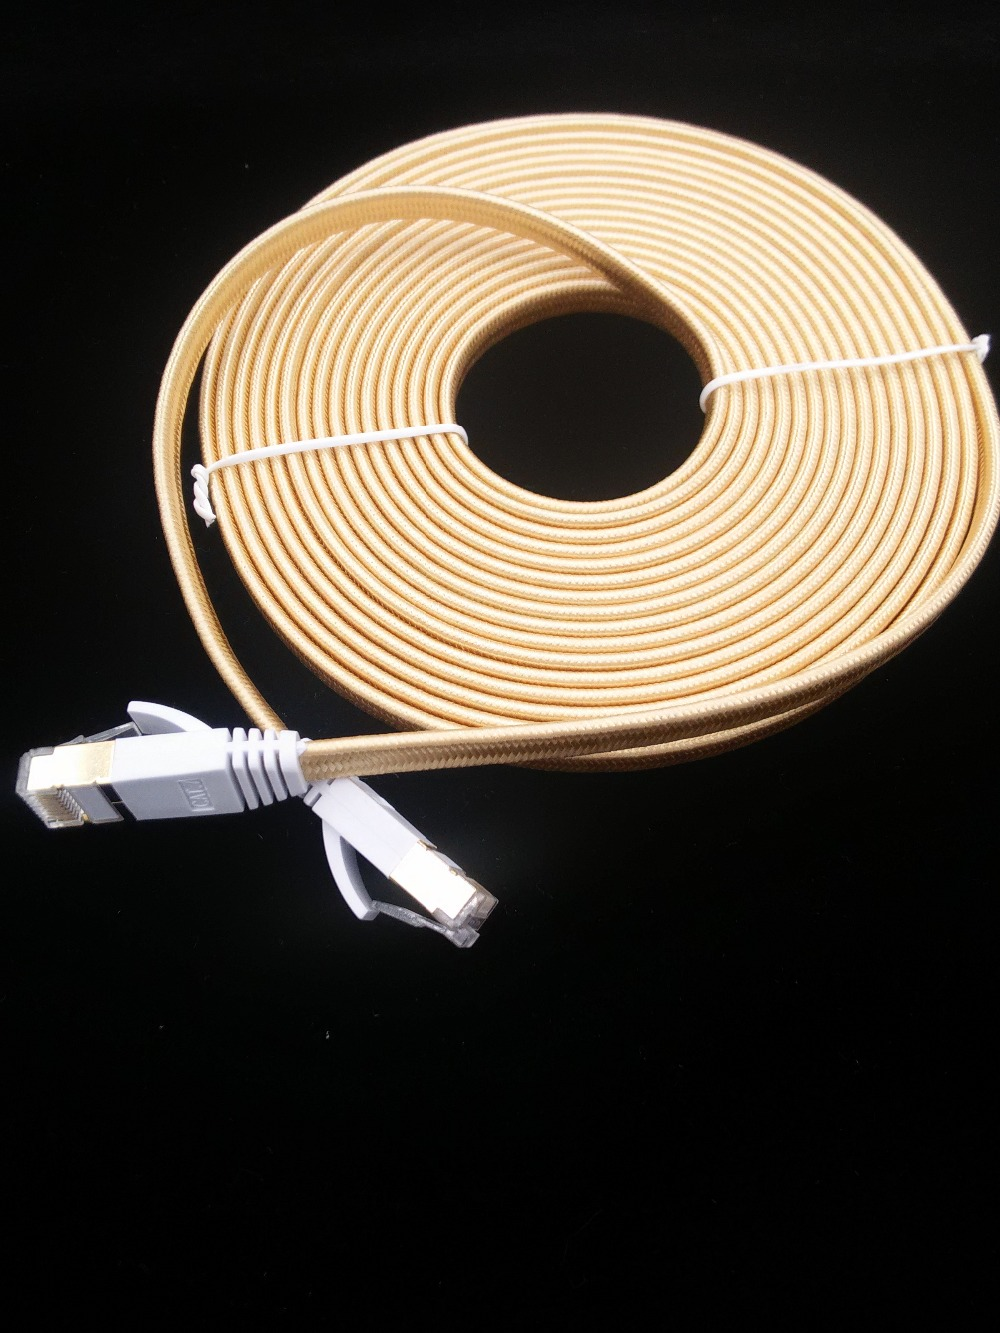 2016 new product GOLD COLOR 0.5m1m1.5m2m 3m,5m 10mCAT7 RJ45 Patch flat Ethernet LAN Network Cable For Router Switch gold plated(China (Mainland))